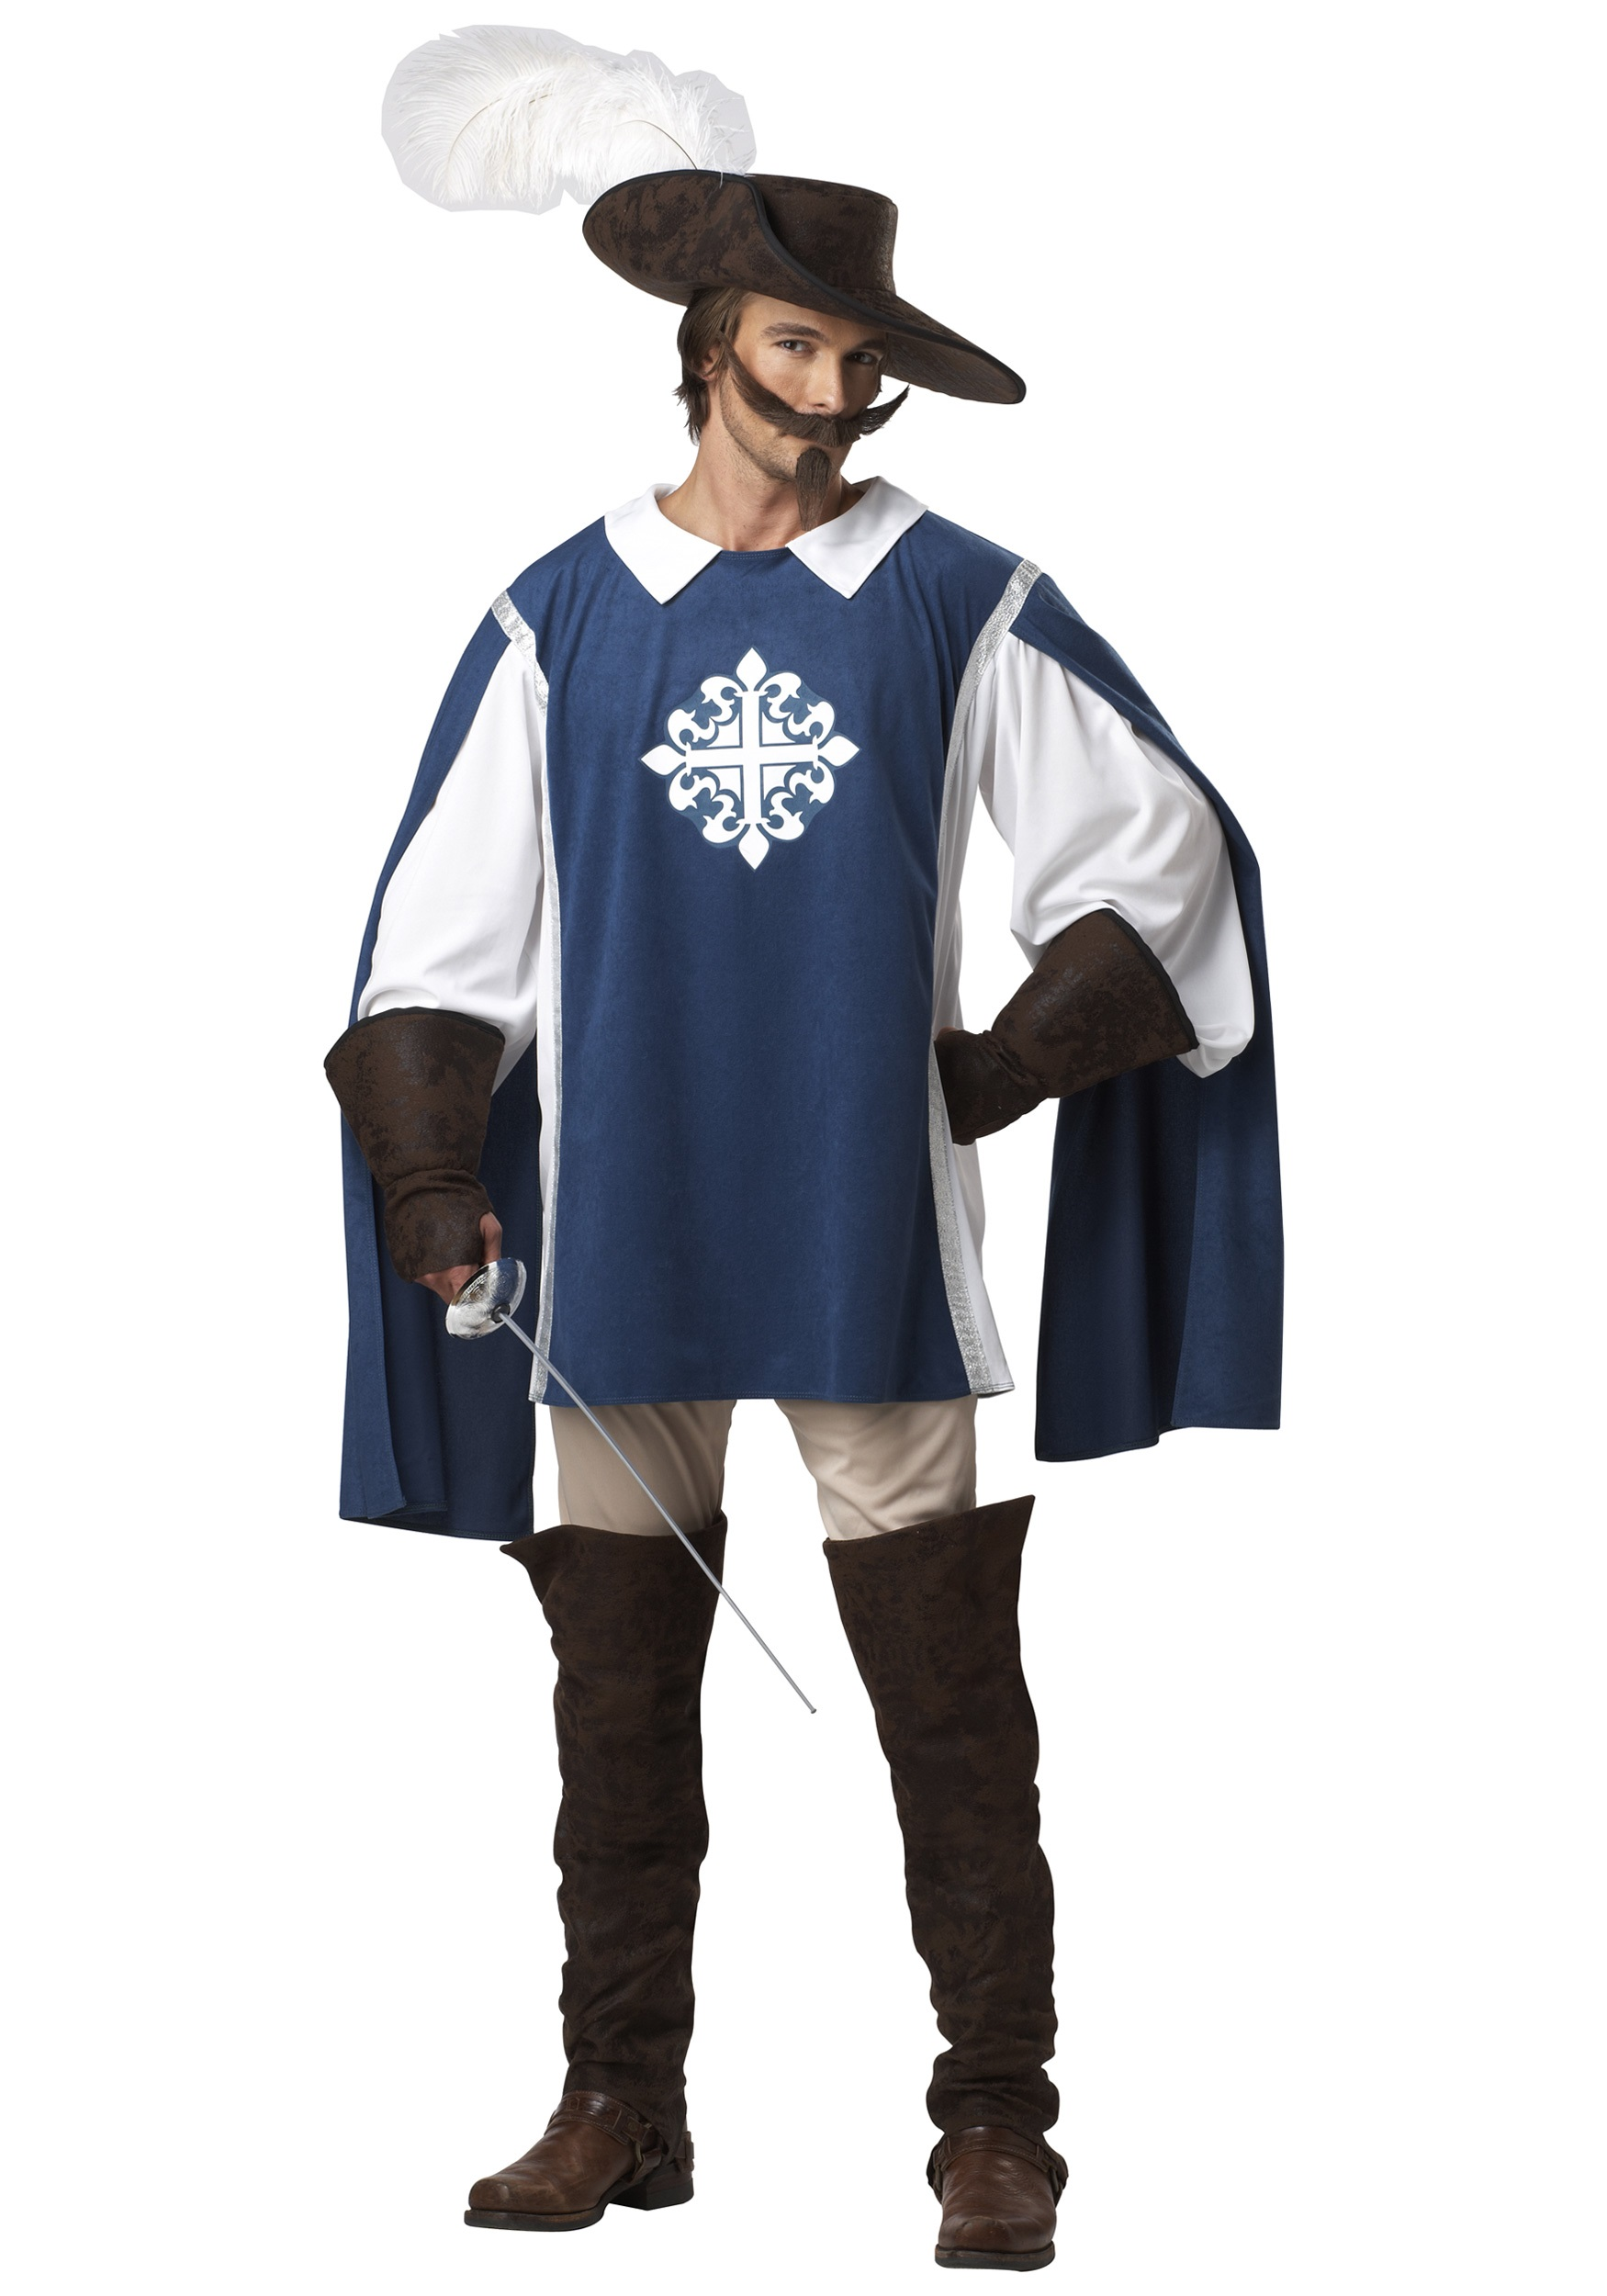 sc 1 st  Halloween Costumes : 3 musketeers costume ideas  - Germanpascual.Com